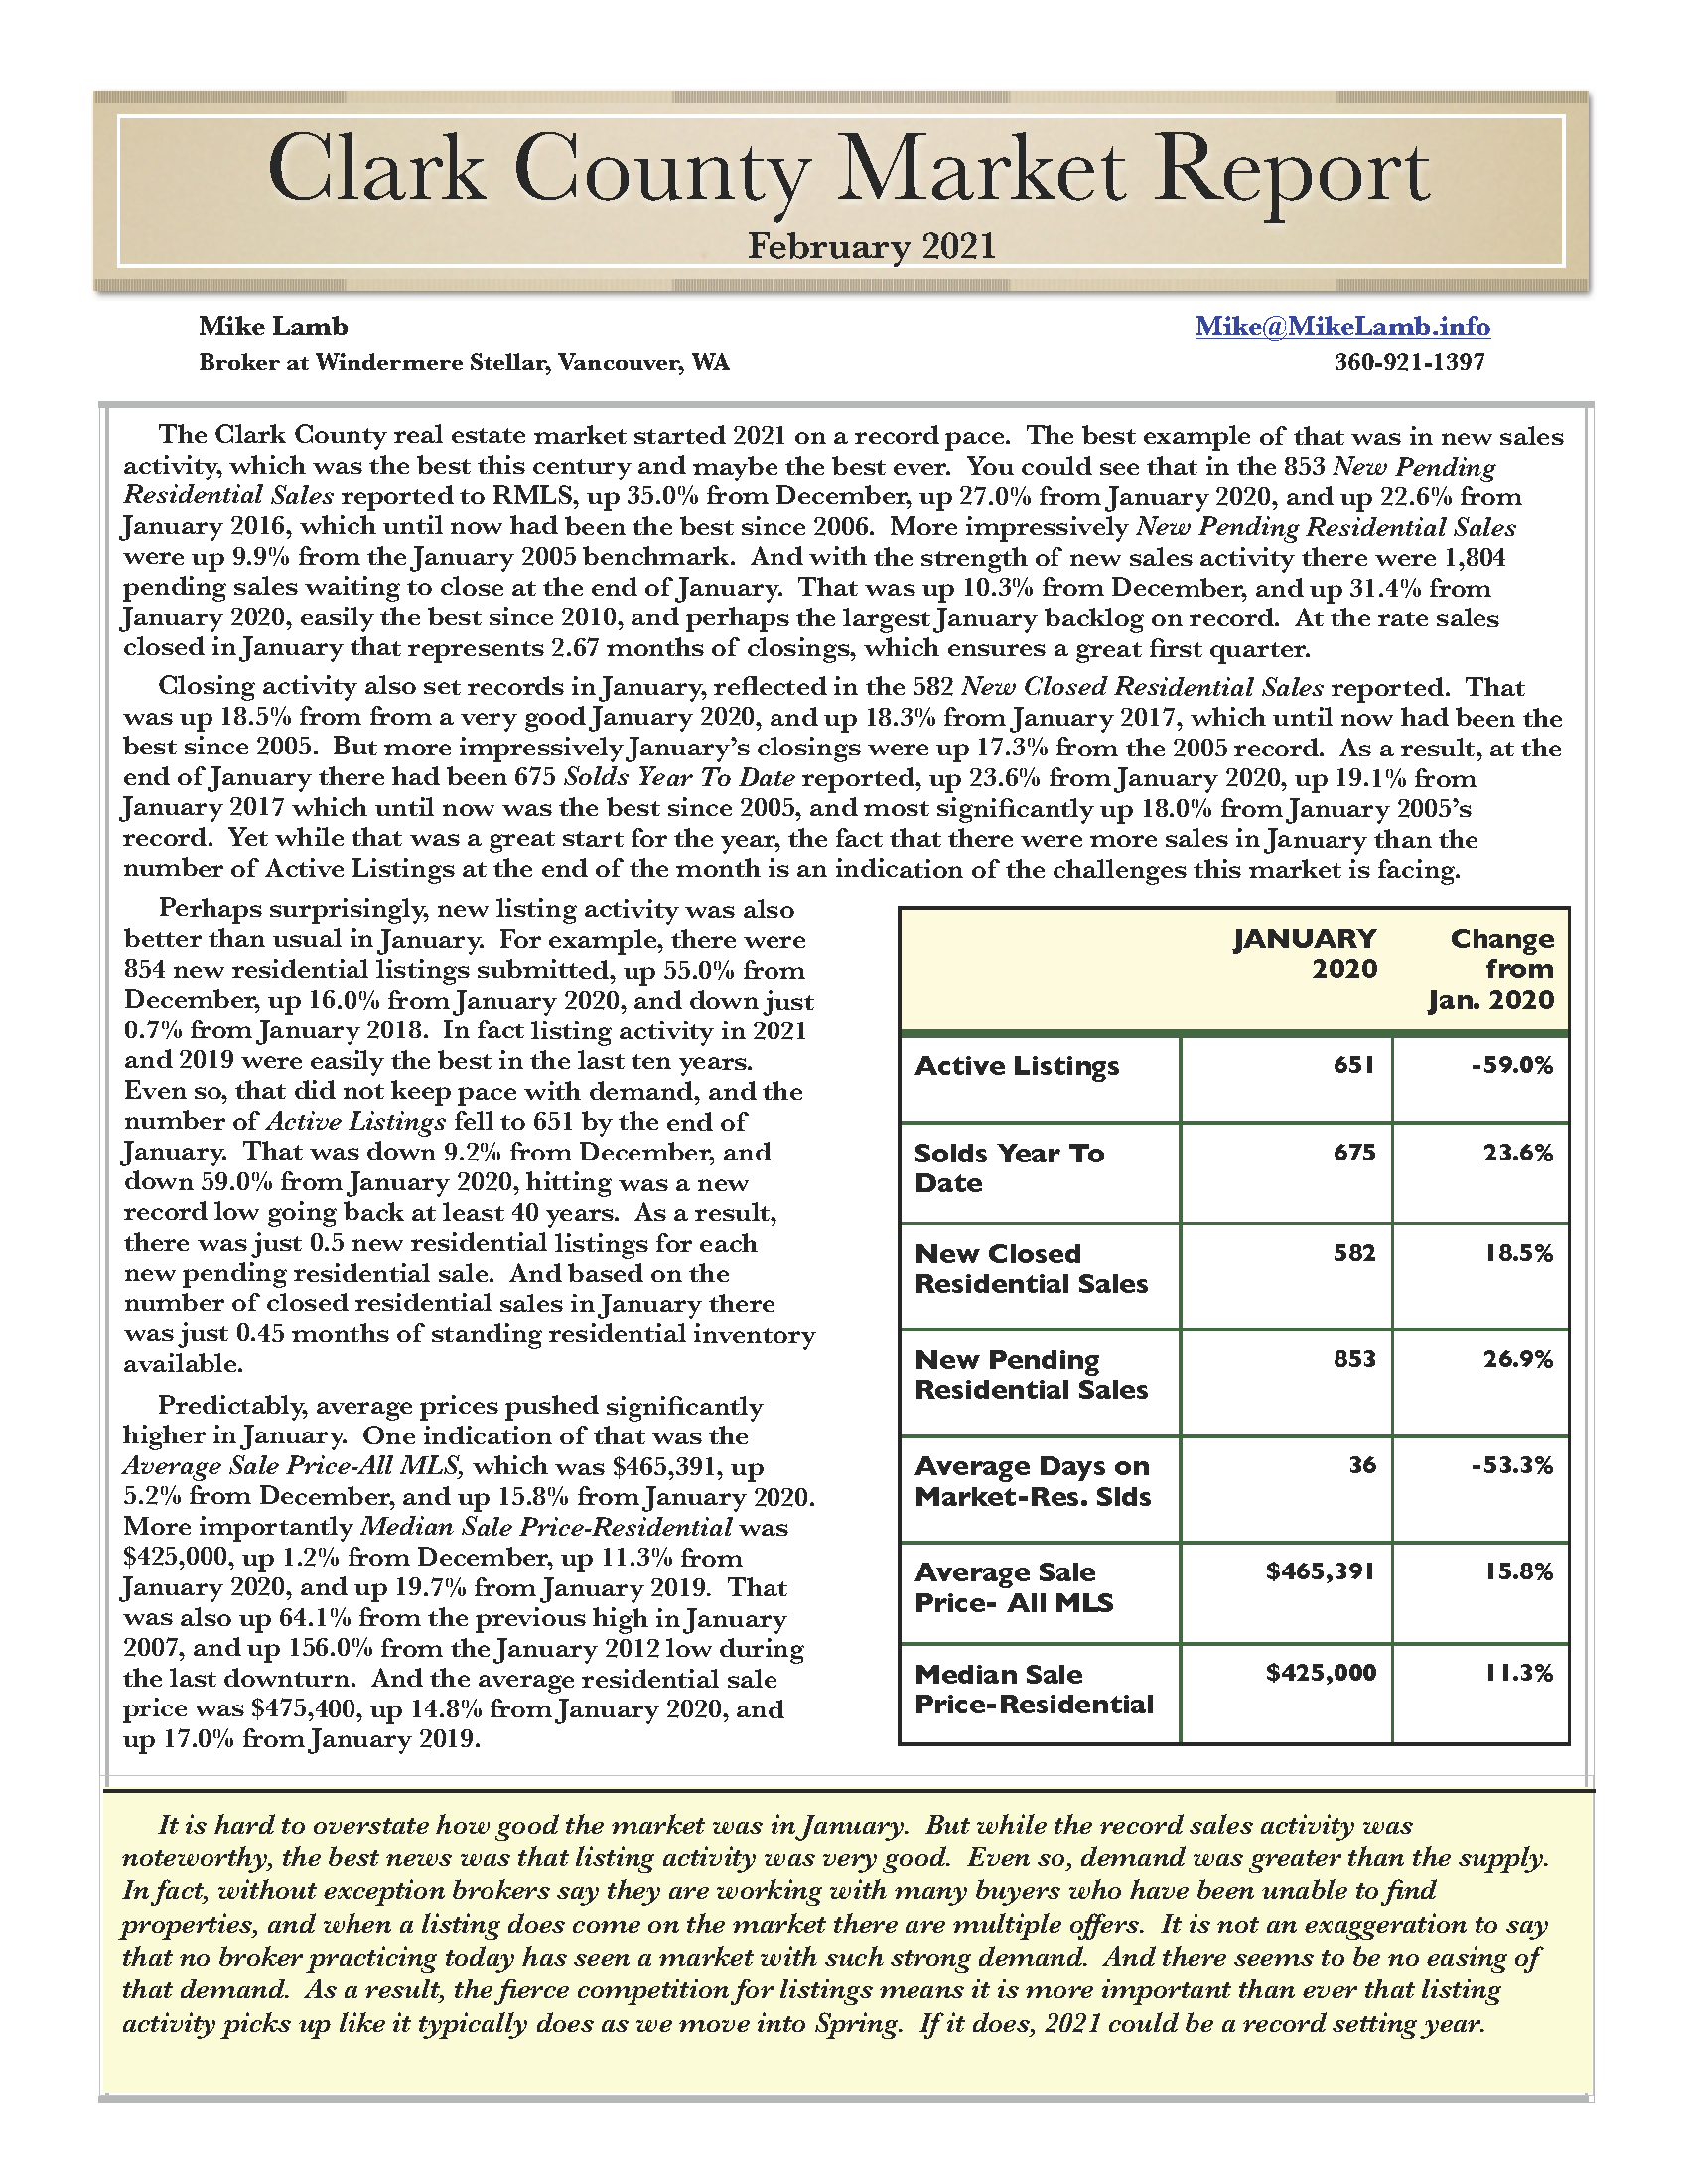 February 2021 Clark County Market Report by Mike Lamb